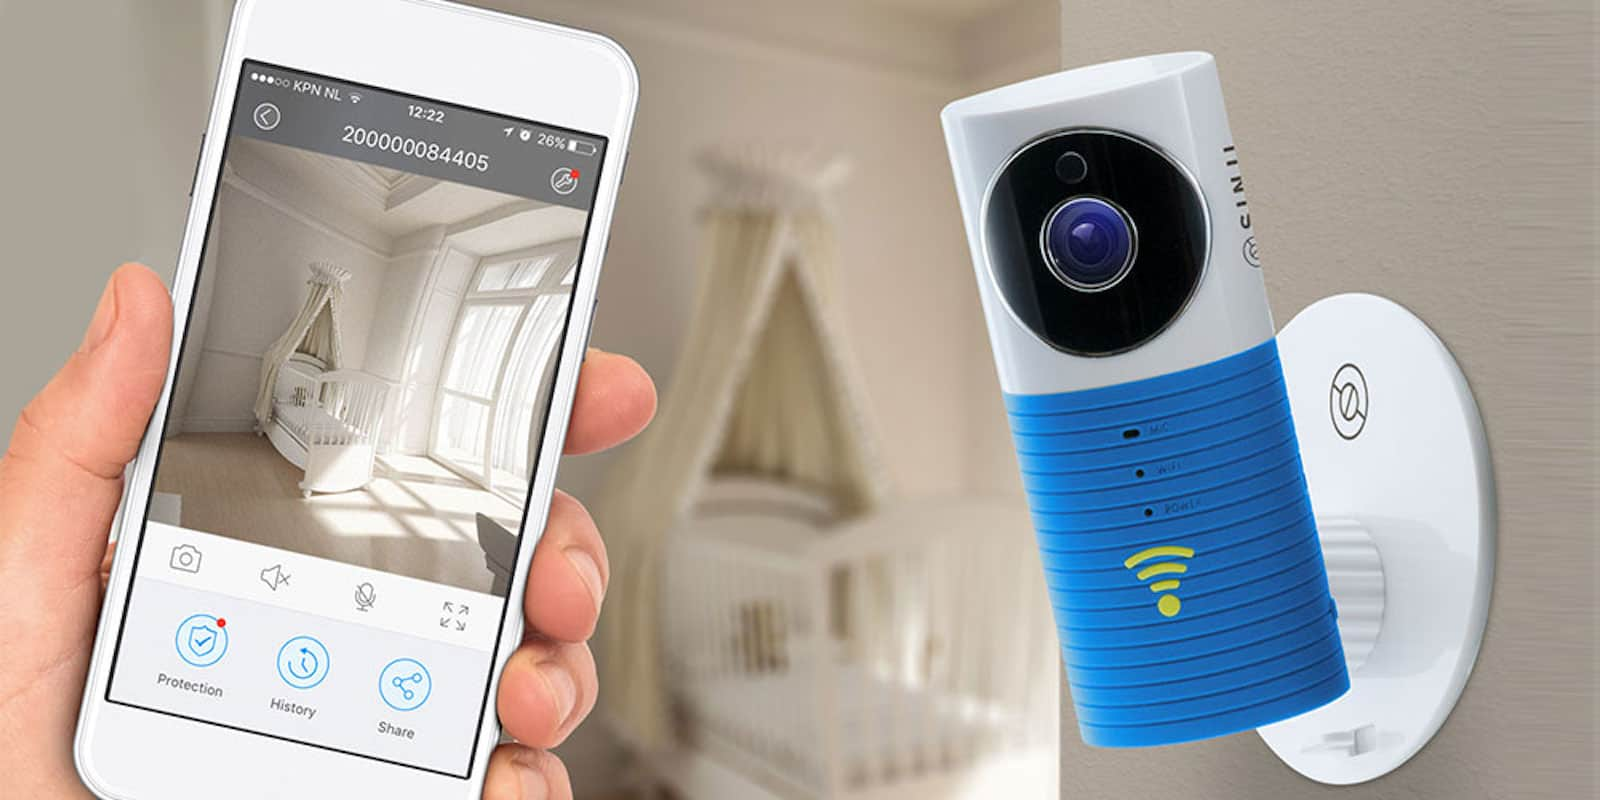 This WiFi camera is ideal for home security, keeping an eye on your baby, or just answering the door.